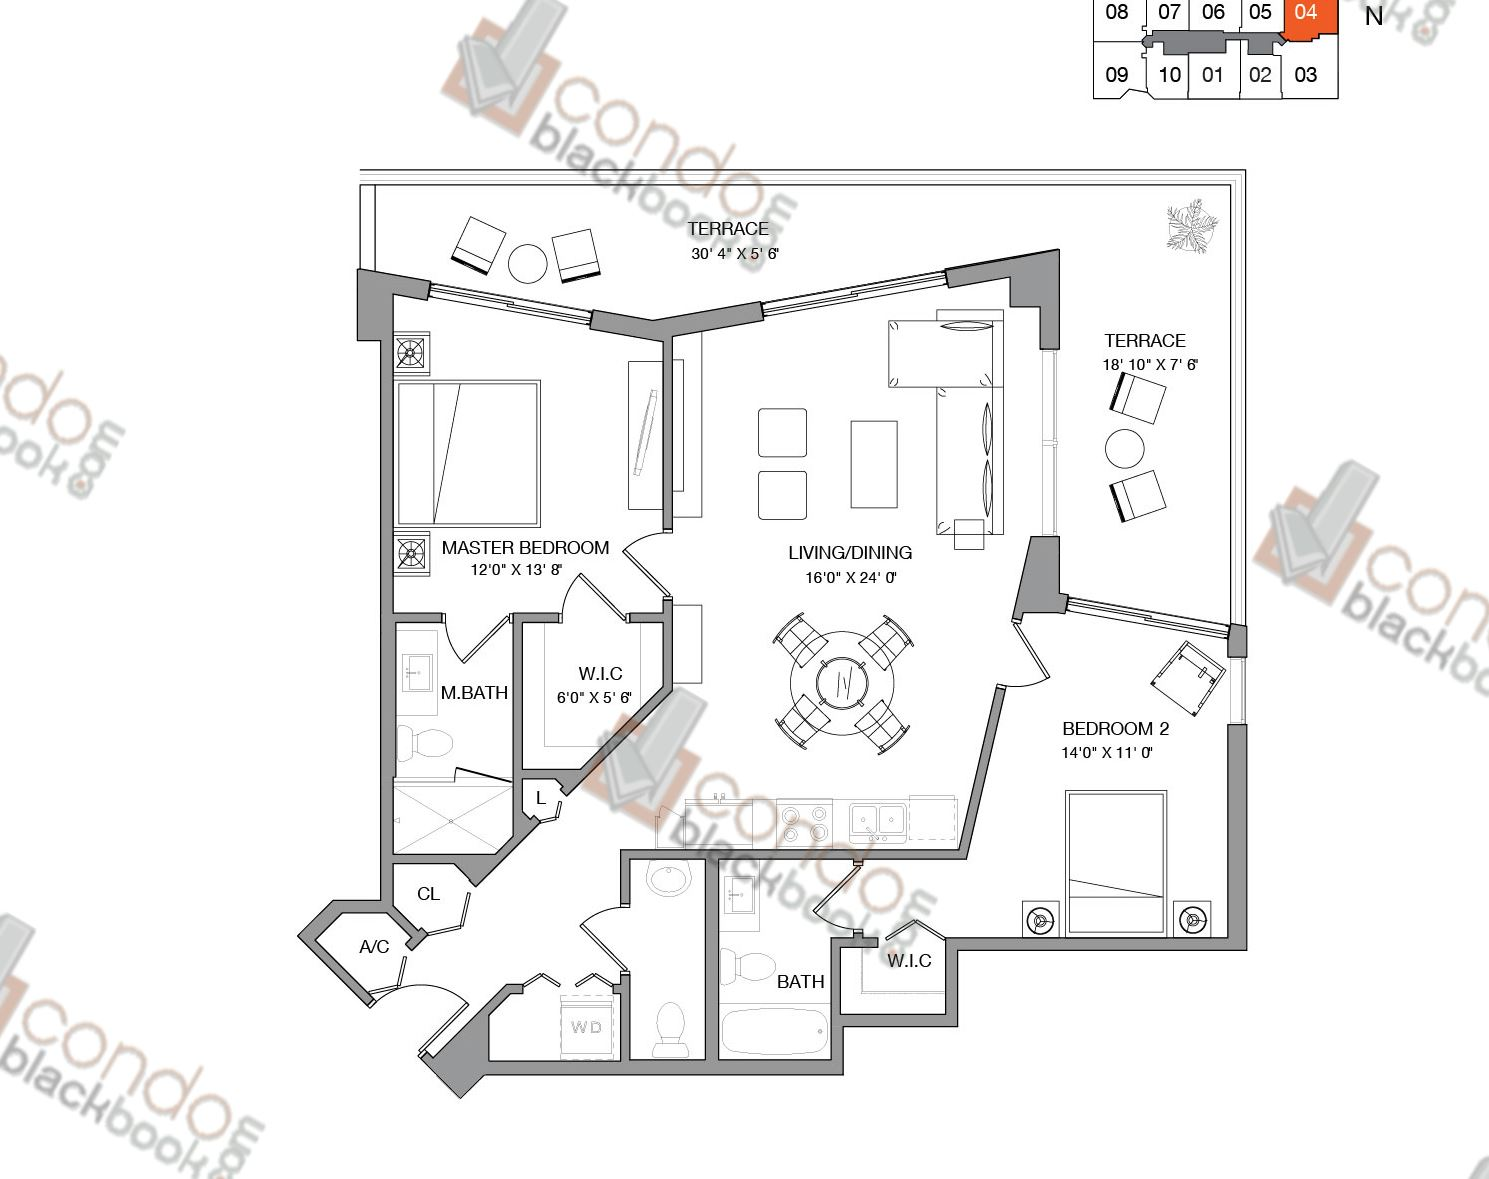 Floor plan for Brickell Ten Brickell Miami, model Residence Four, line 04, 2/2.5 bedrooms, 1,124 sq ft